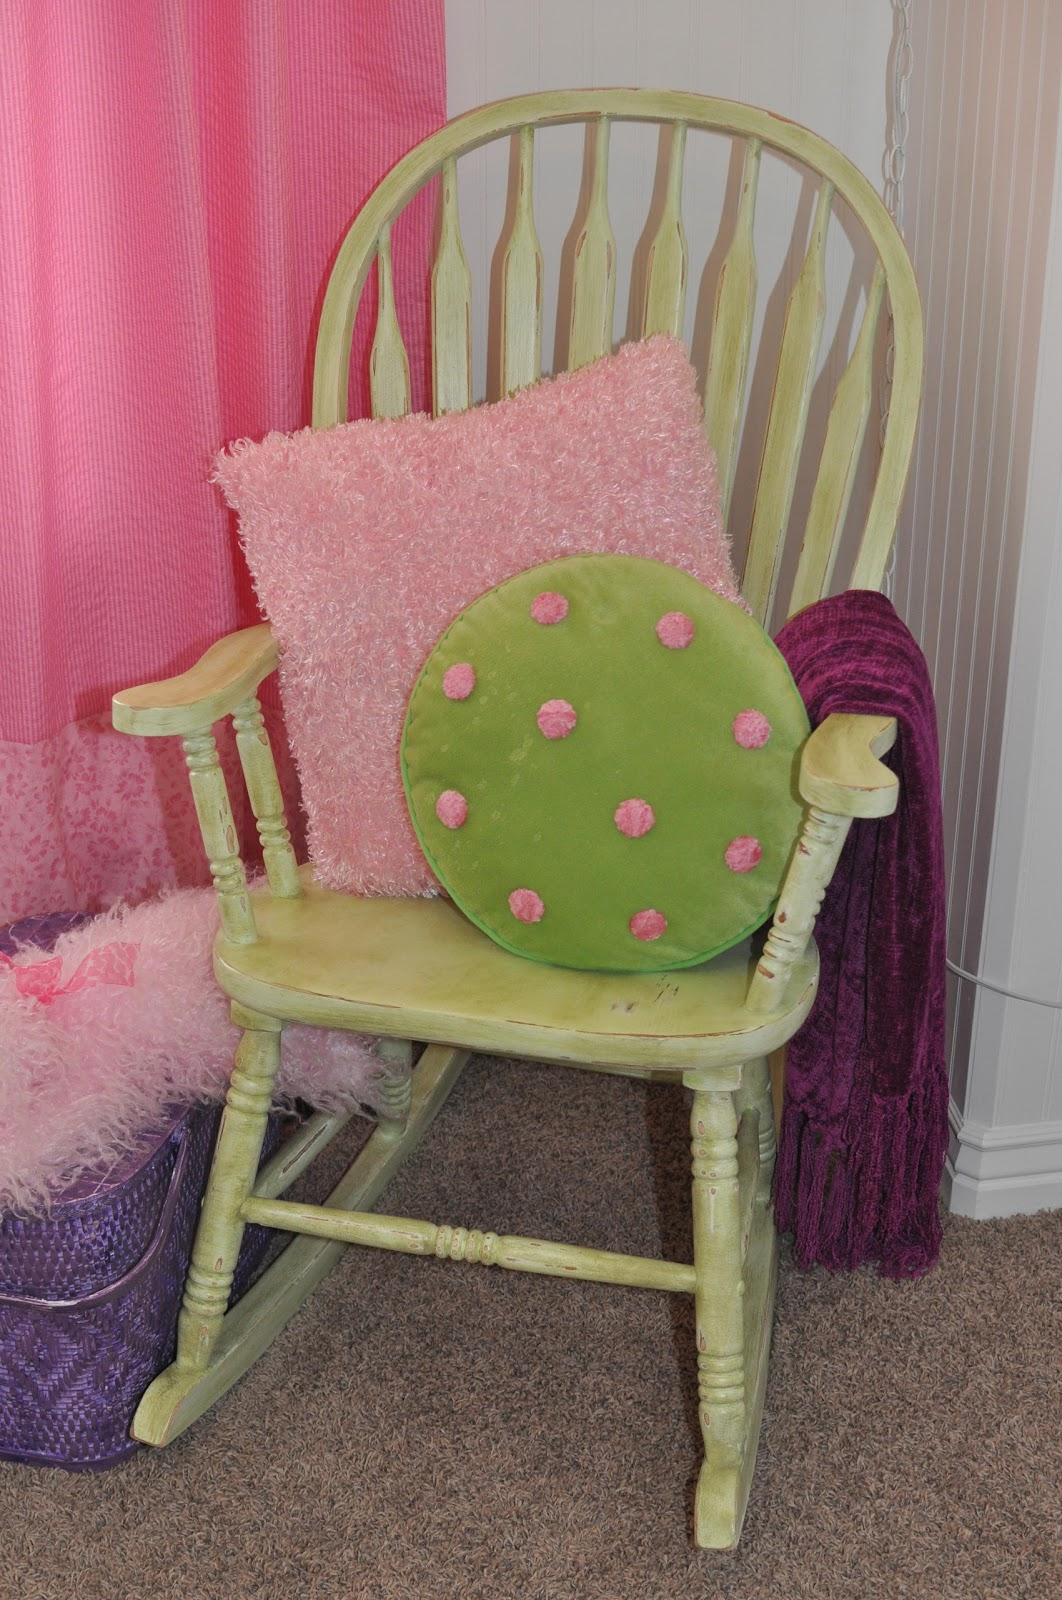 green rocking chair covers wedding for sale cleverly crafty l ight